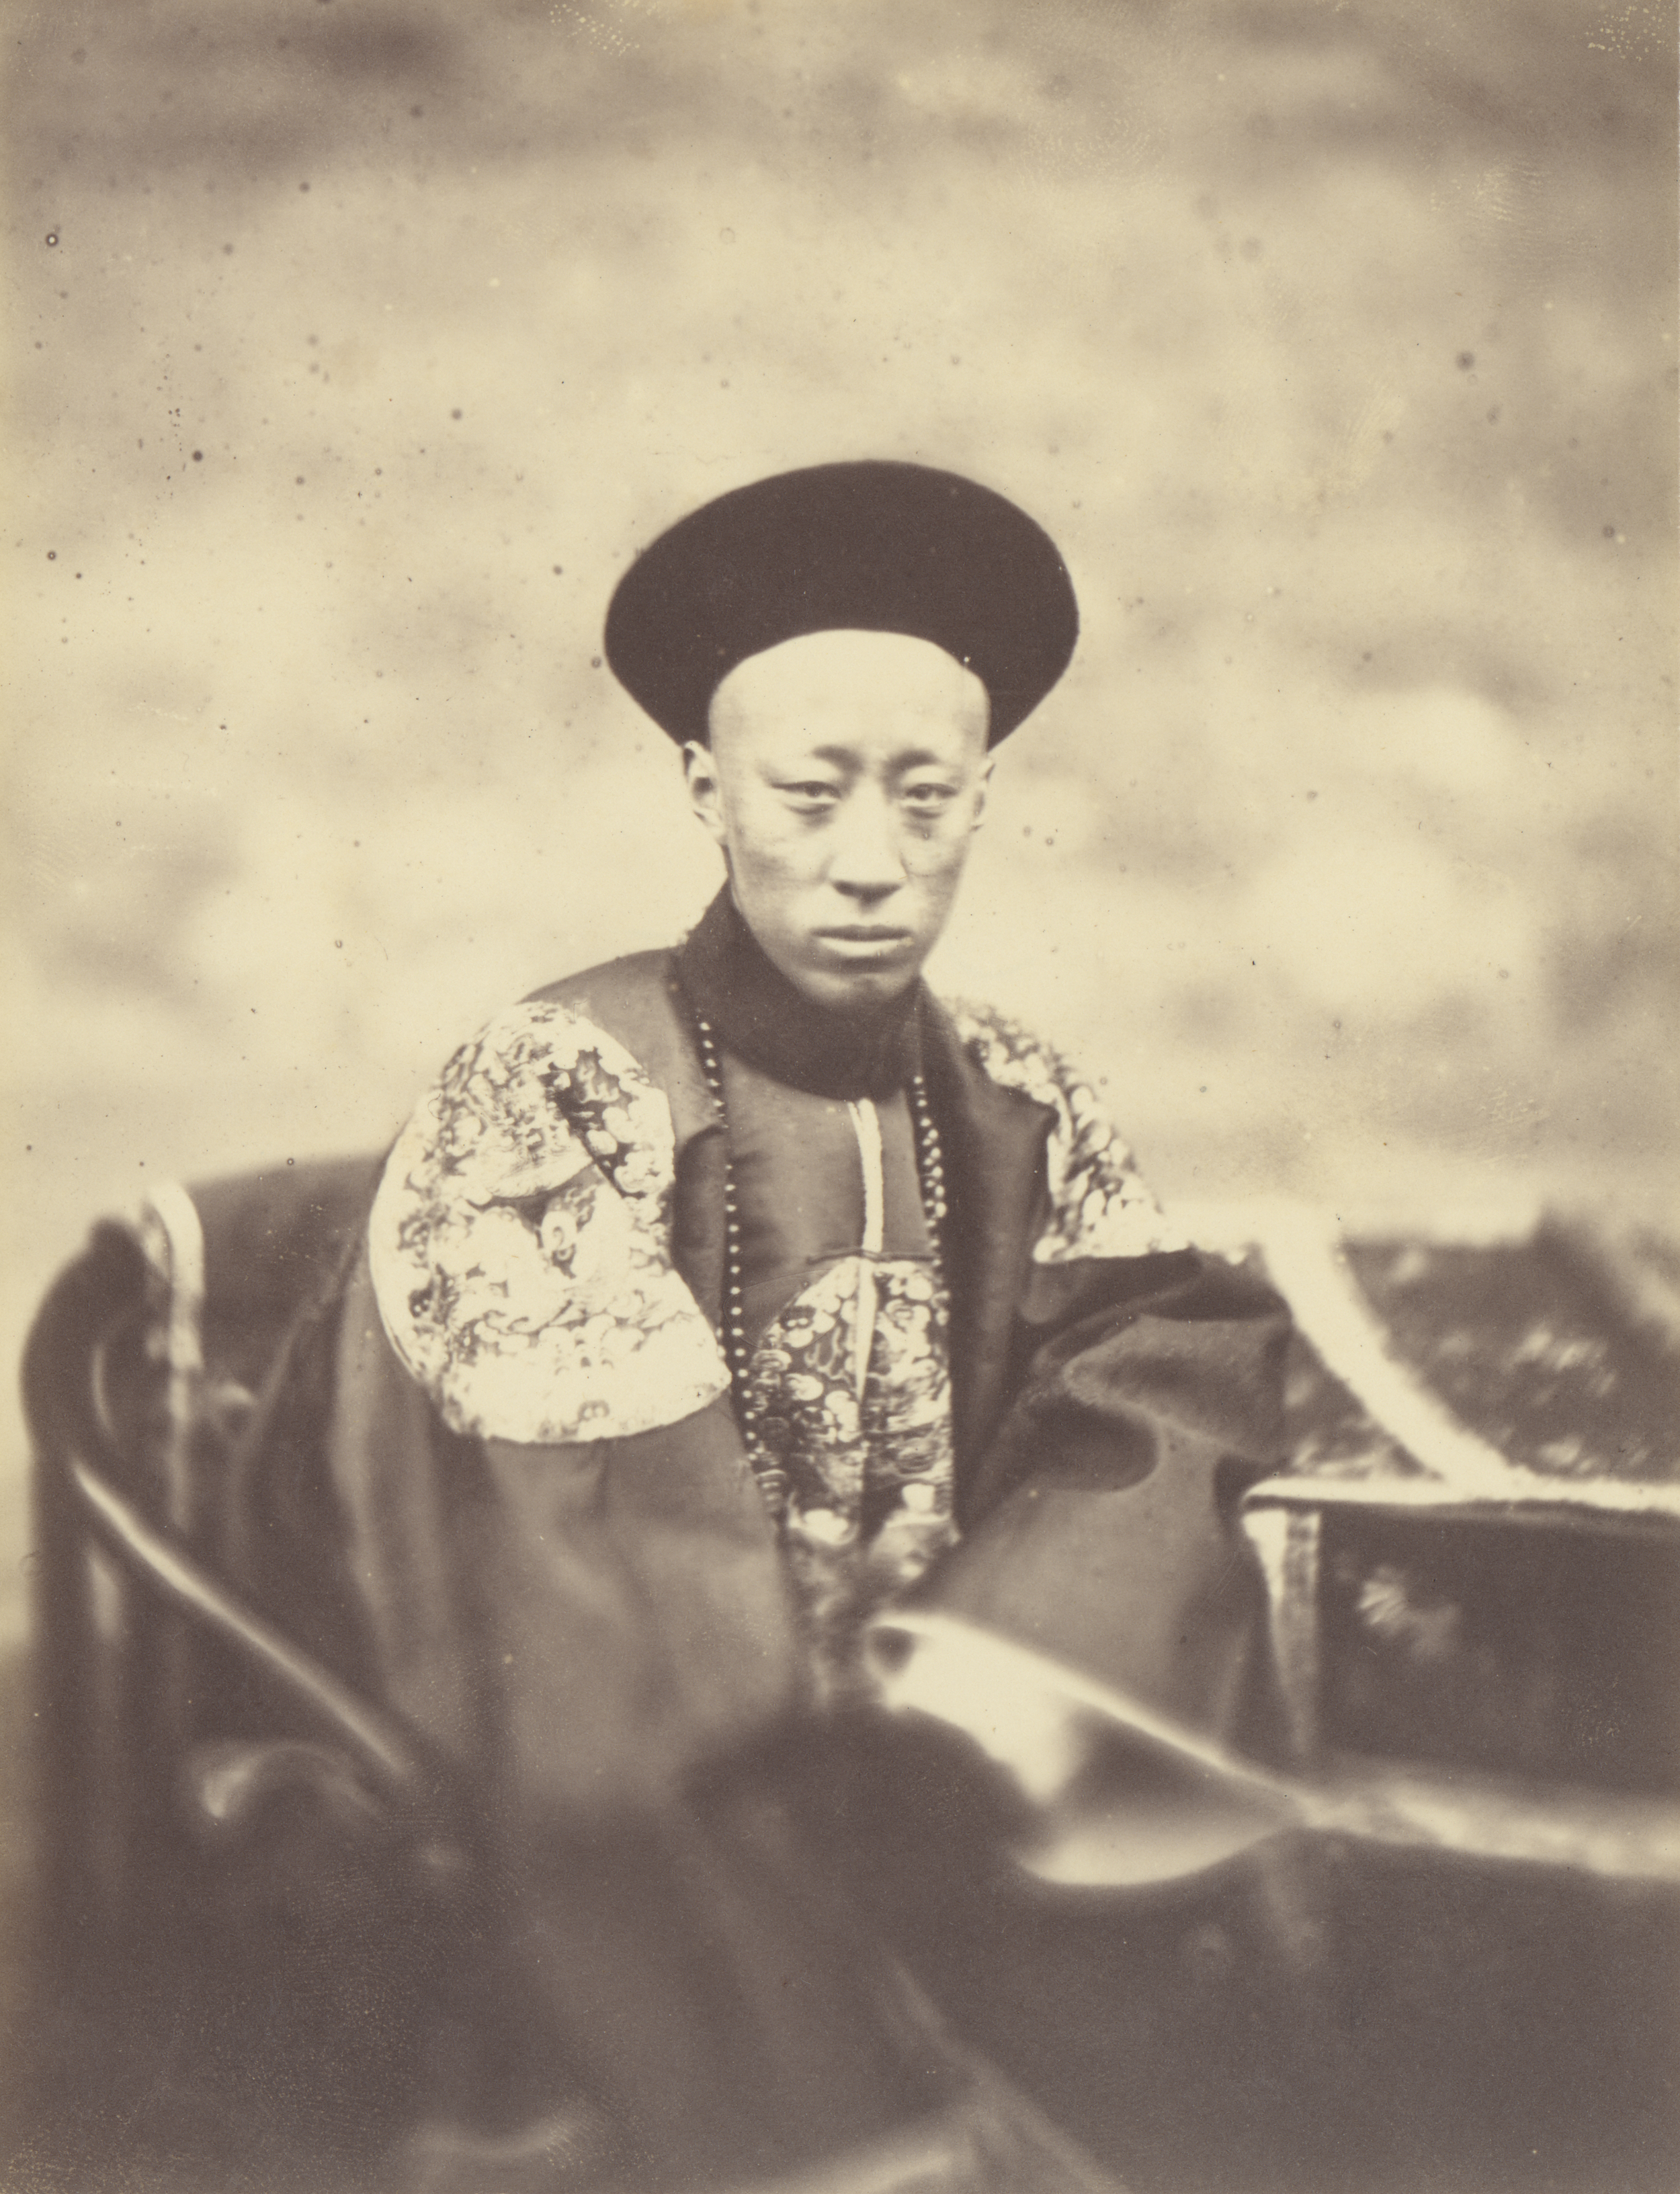 Portrait of Prince Kung, Brother of the Emperor of China, Who Signed the Treaty, 1860, Albumen silver print, 16.6 x 13 cm. The J. Paul Getty Museum, Los Angeles